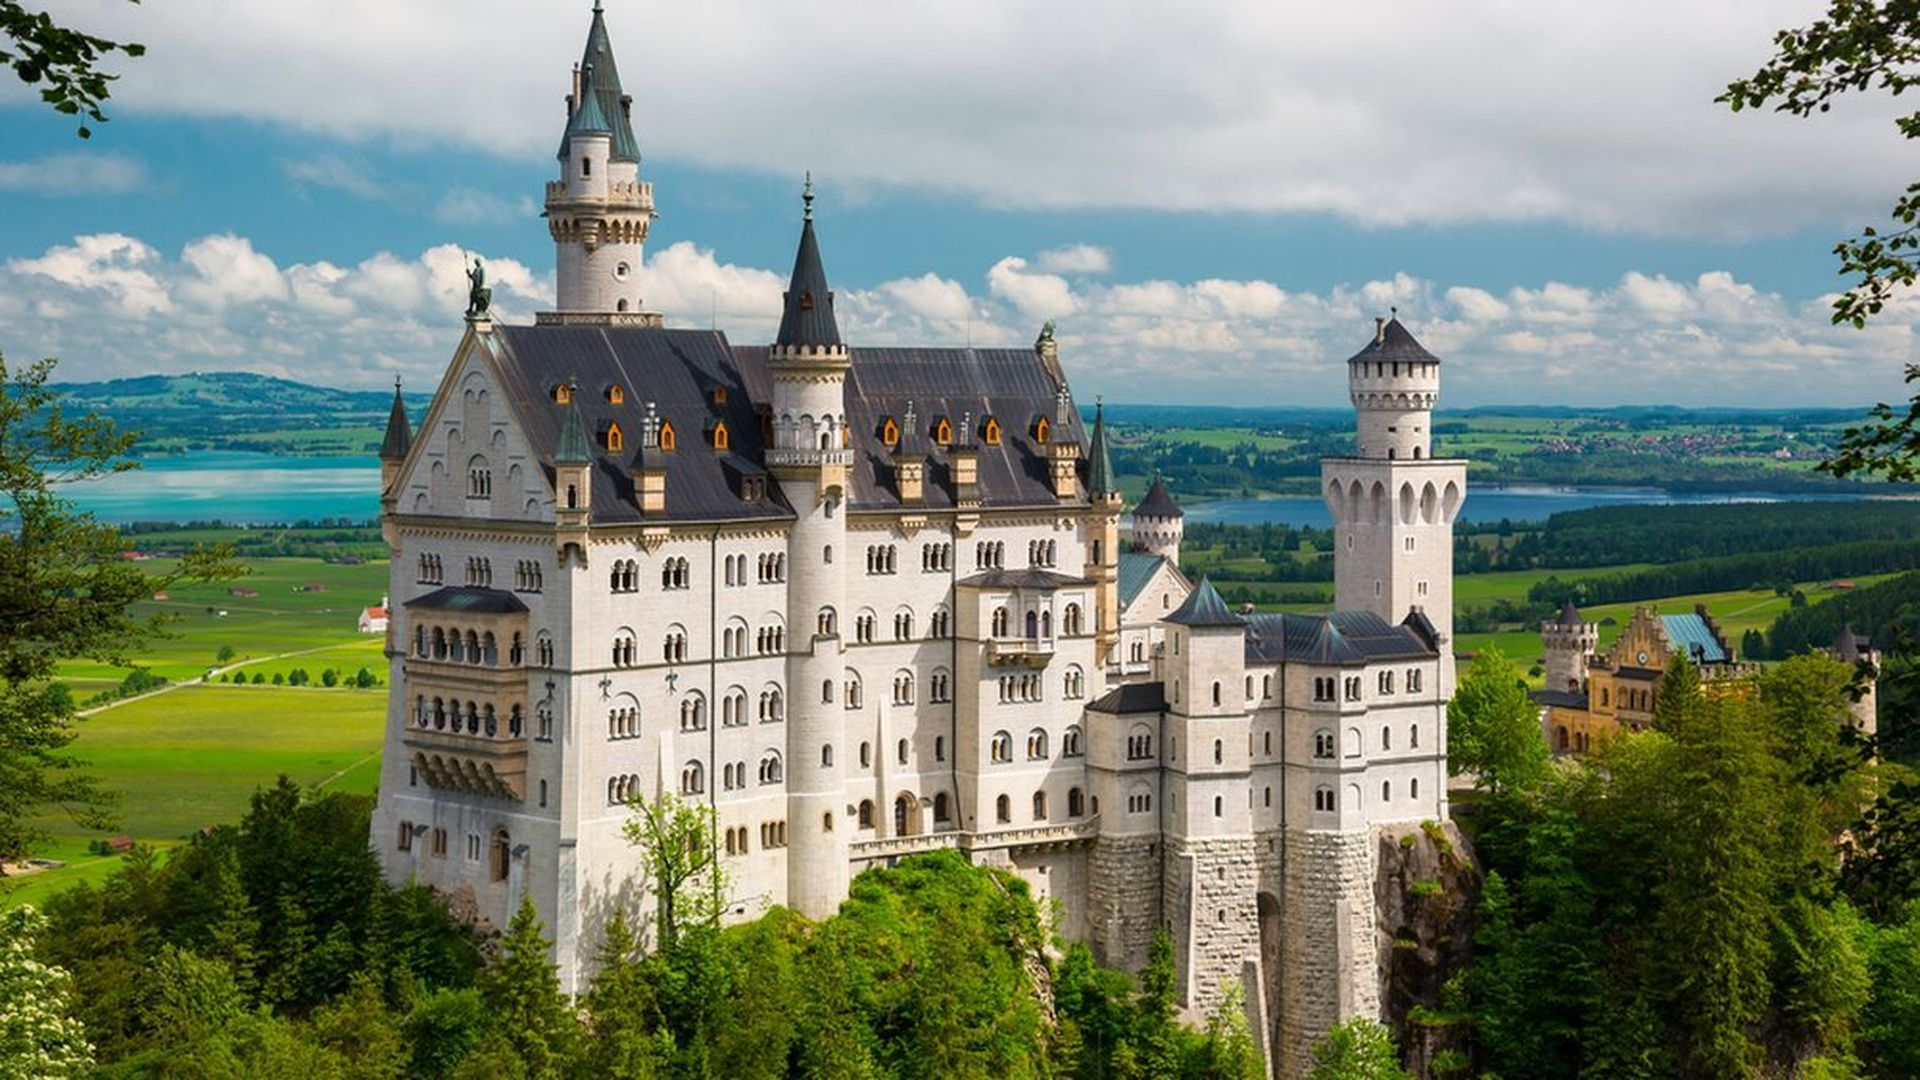 99 Of People Can T Name These Famous Castles From Images Can You Zoo